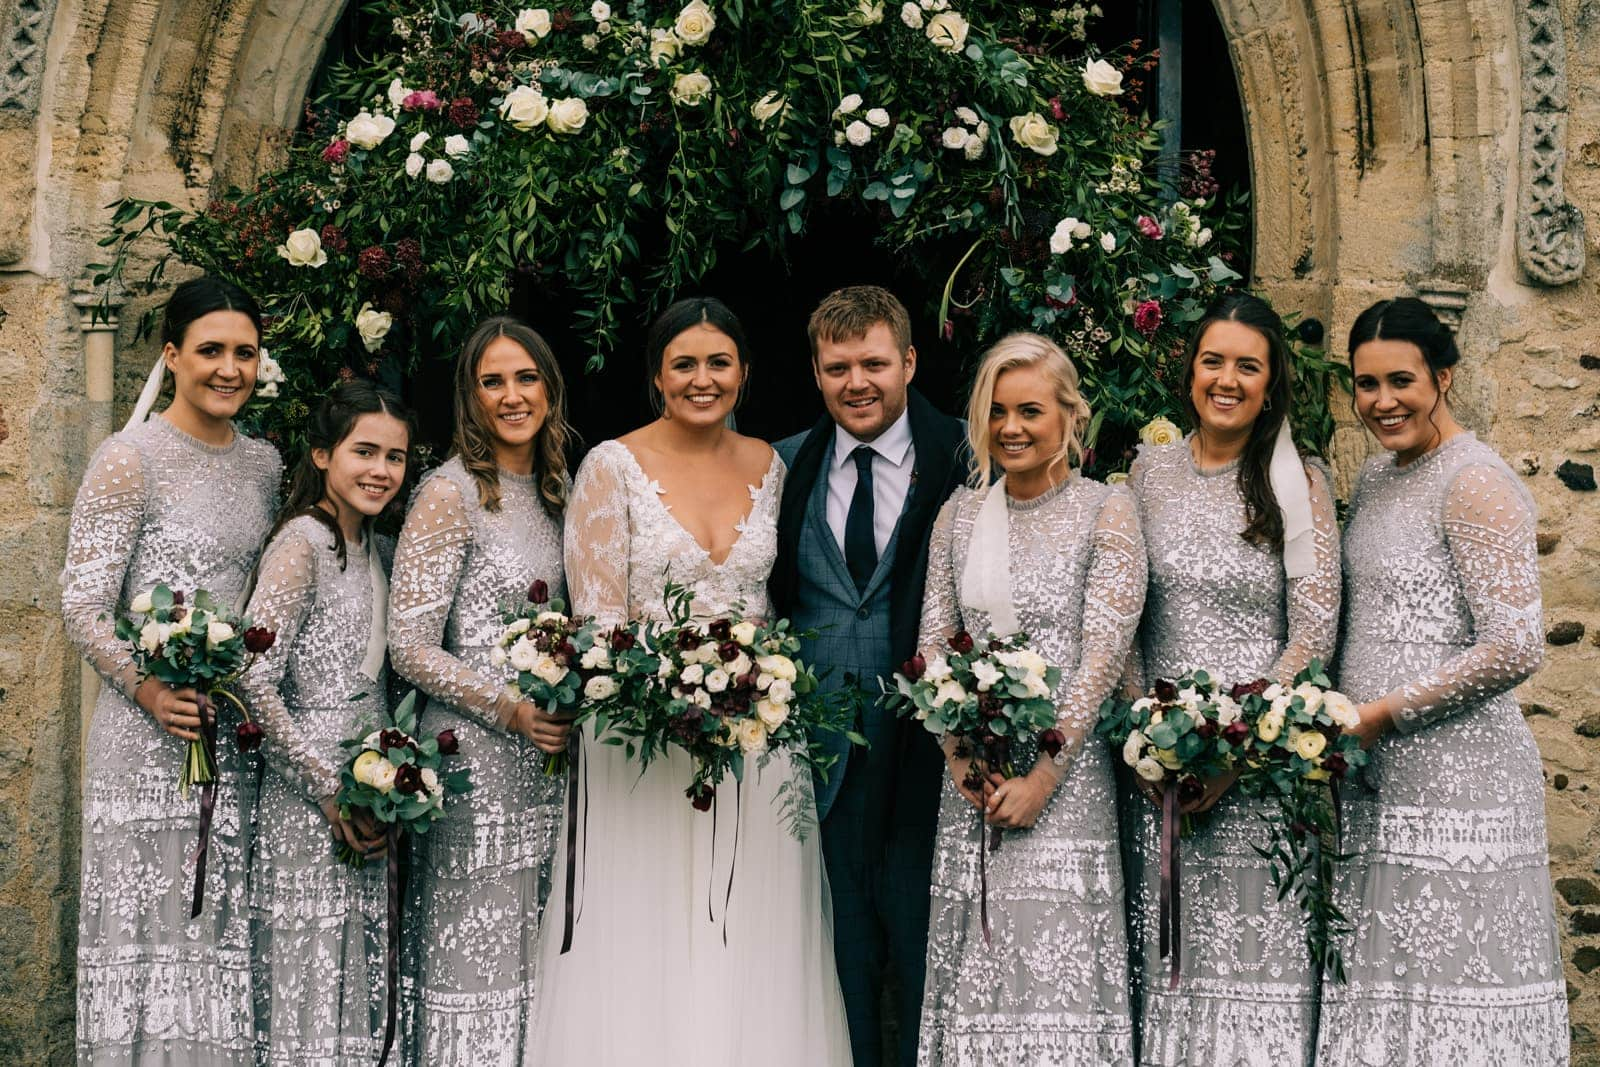 Bride and groom with the bridesmaids